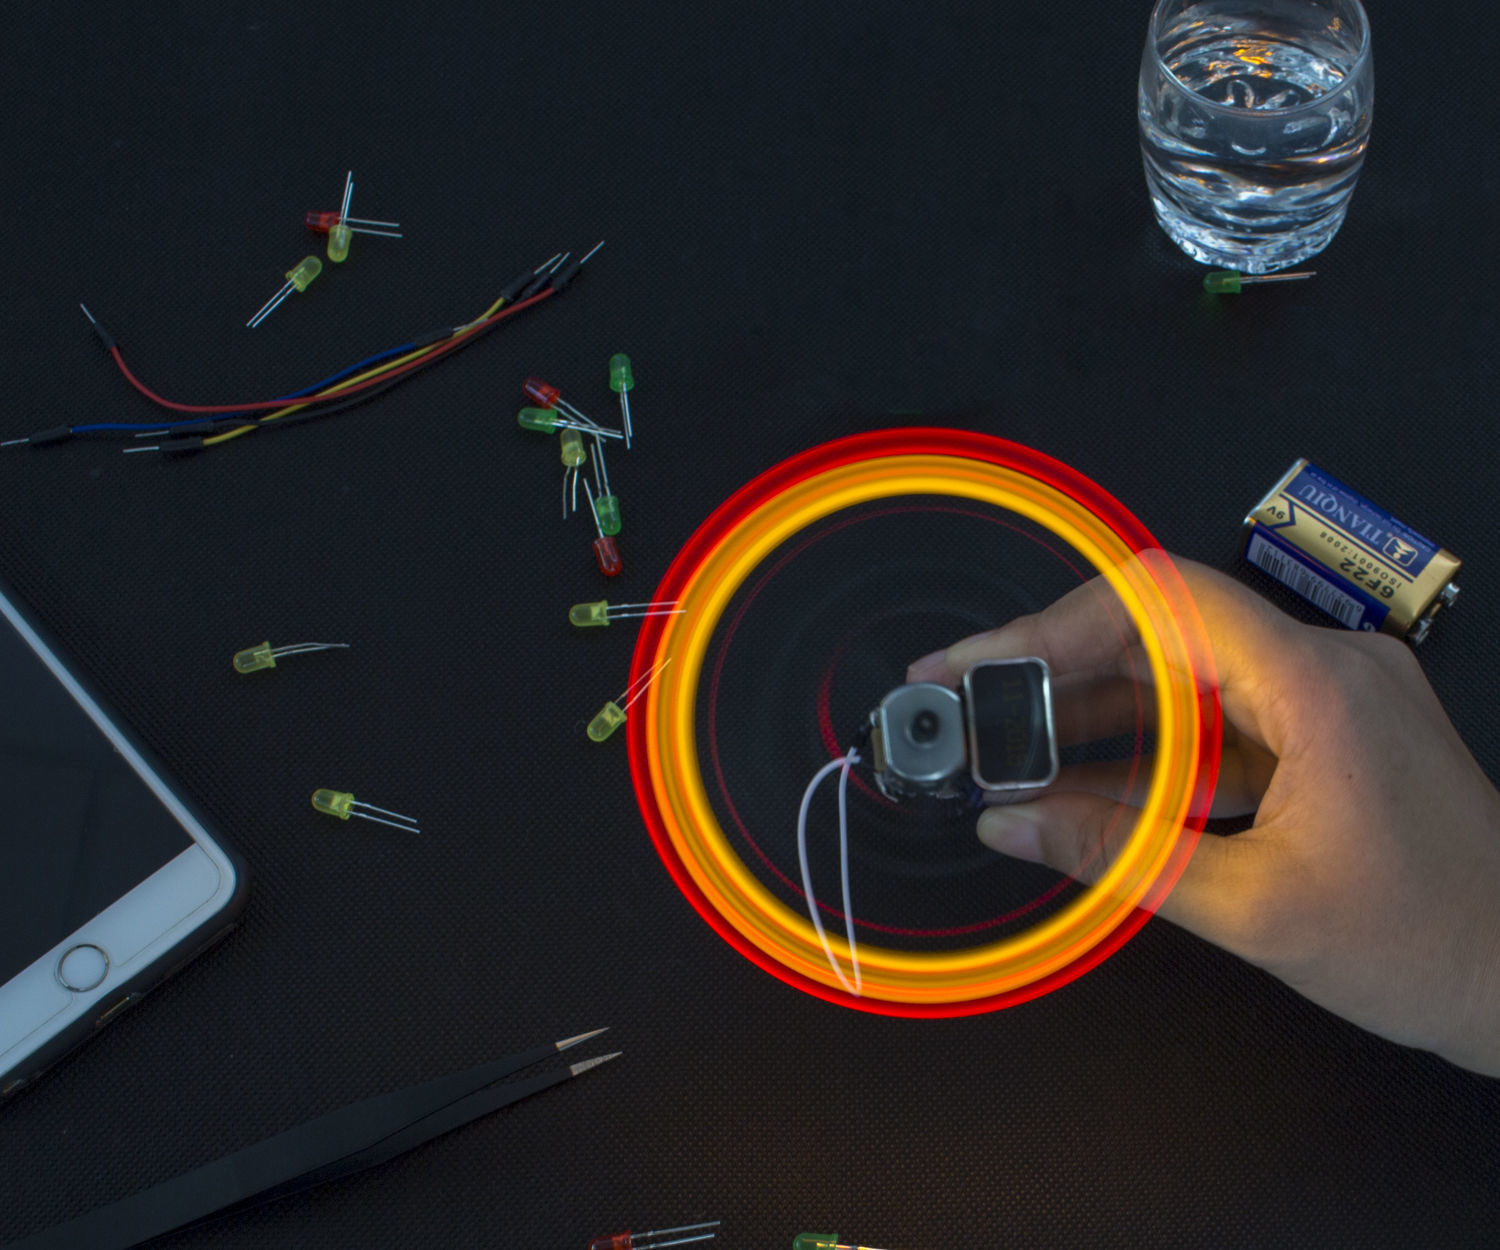 How to Make a Spinning LED Light in Minutes – No Programming